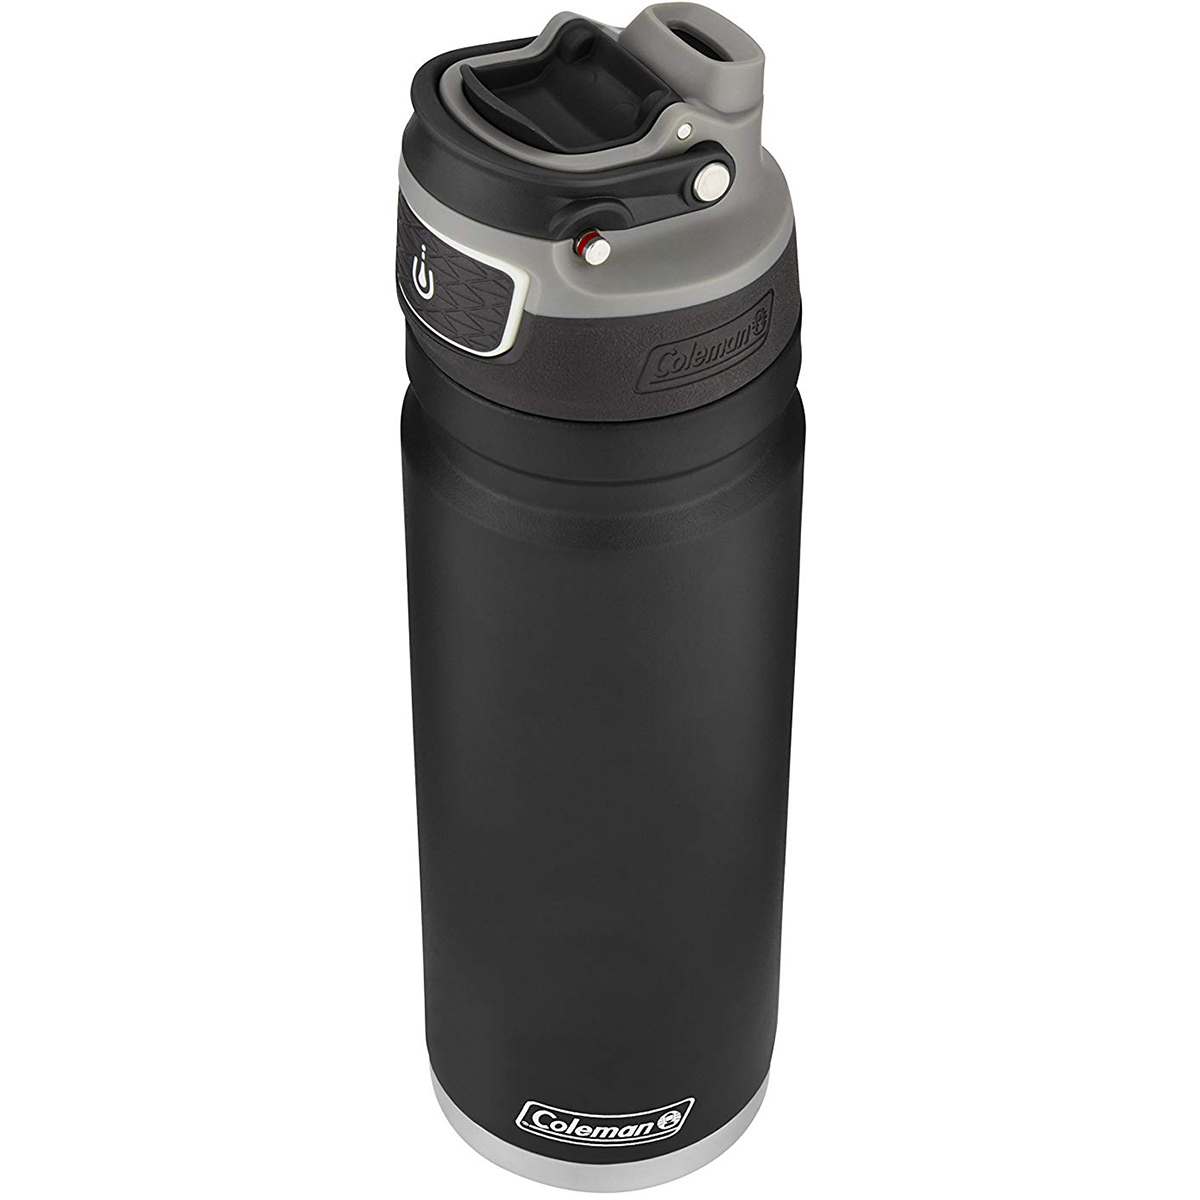 Coleman-24-oz-Free-Flow-Autoseal-Insulated-Stainless-Steel-Water-Bottle thumbnail 4